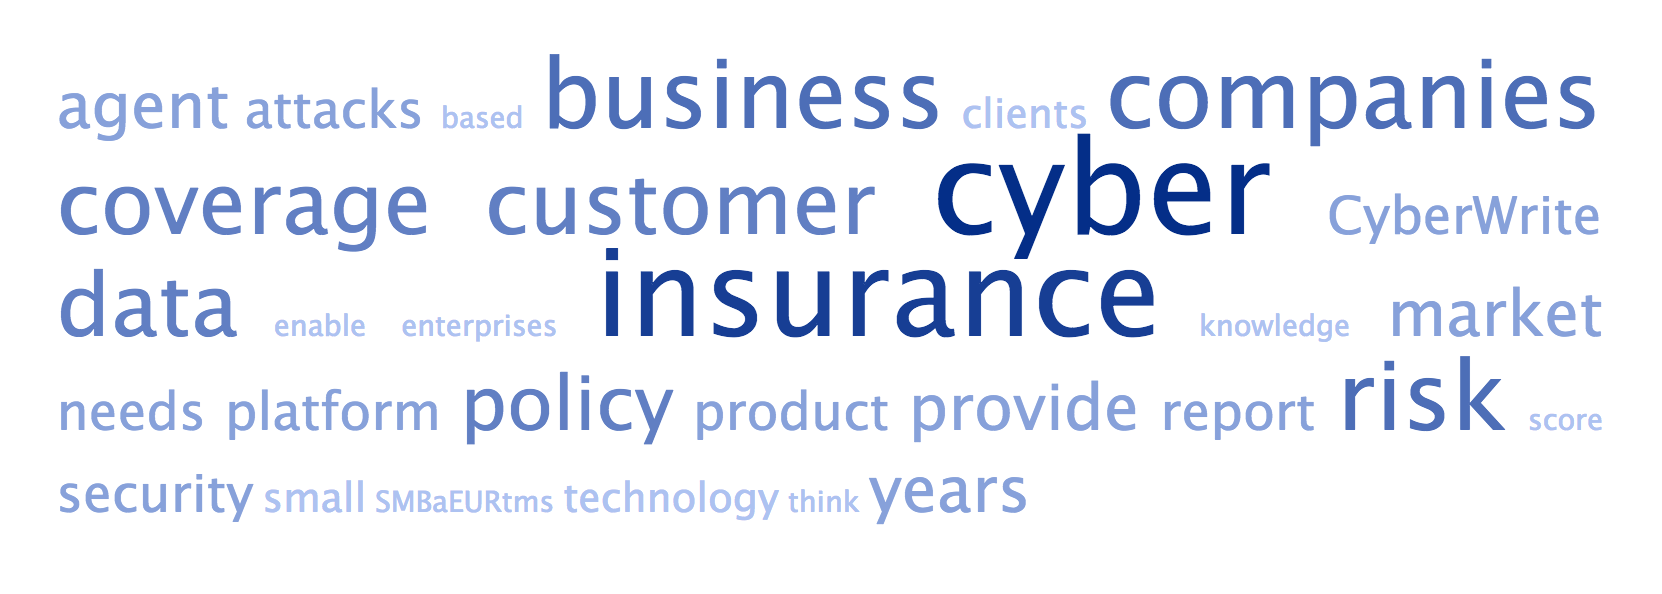 Cyber insurance.png